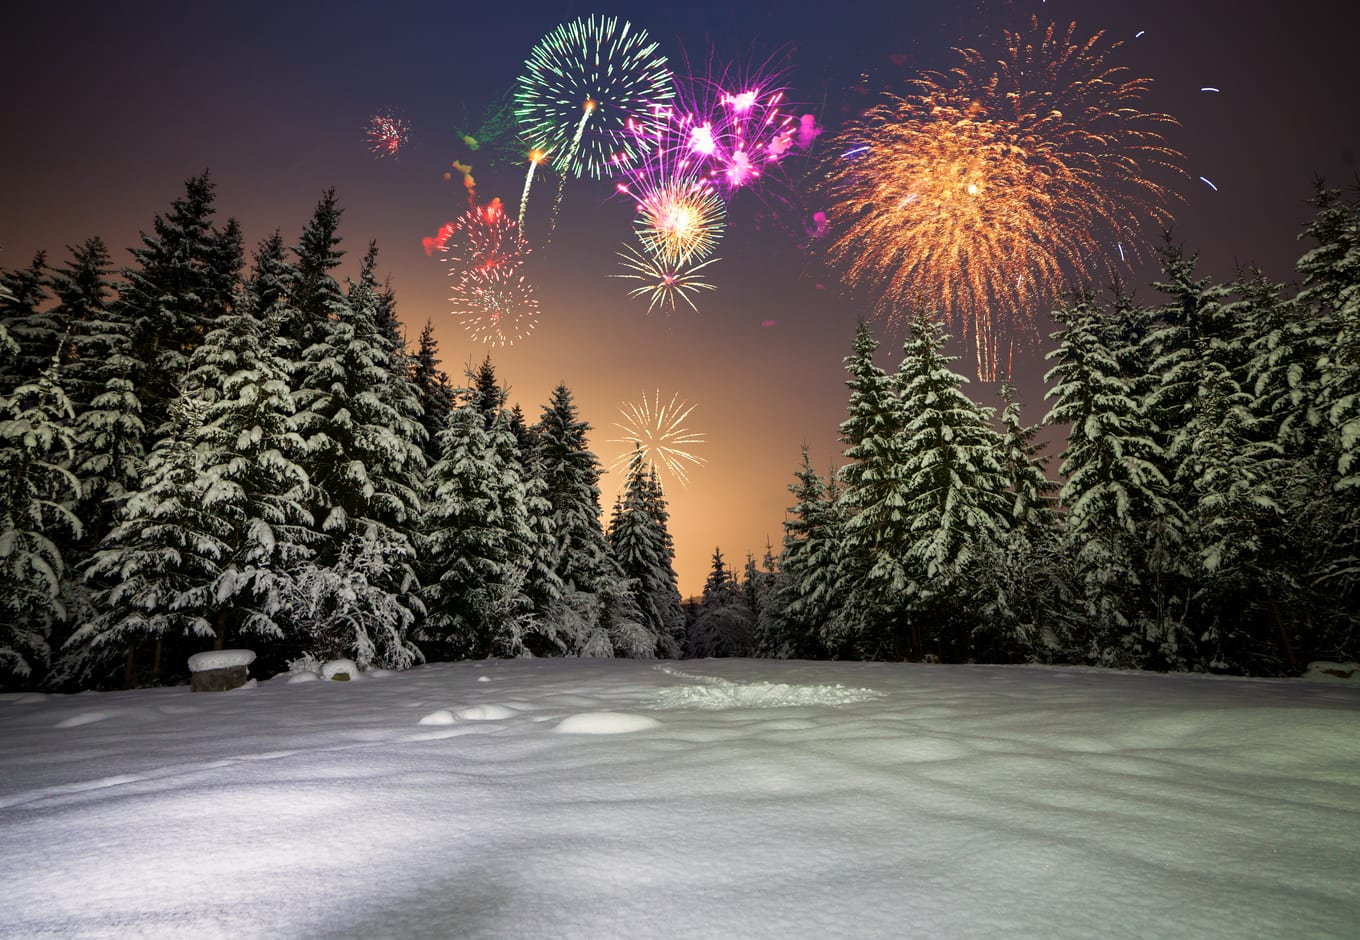 Winter night landscape wit colorful fireworks over a pine forest.